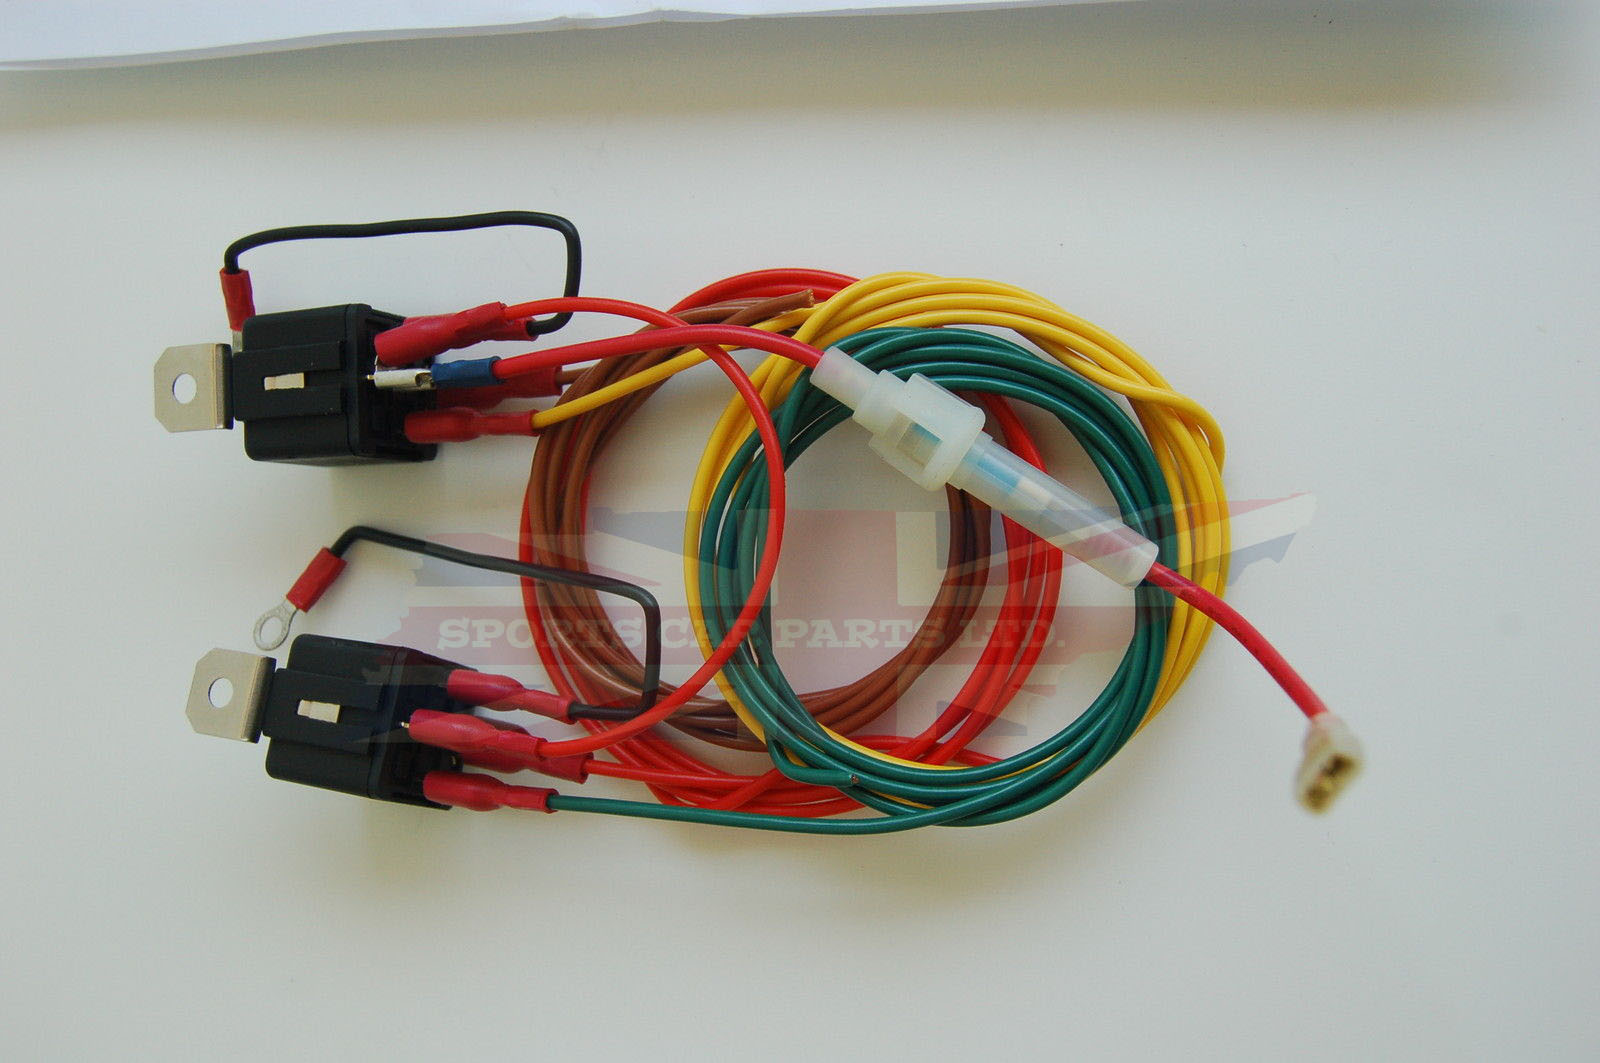 hight resolution of headlight headlamp wiring harness relay kit headlight headlamp wiring harness relay kit 117515